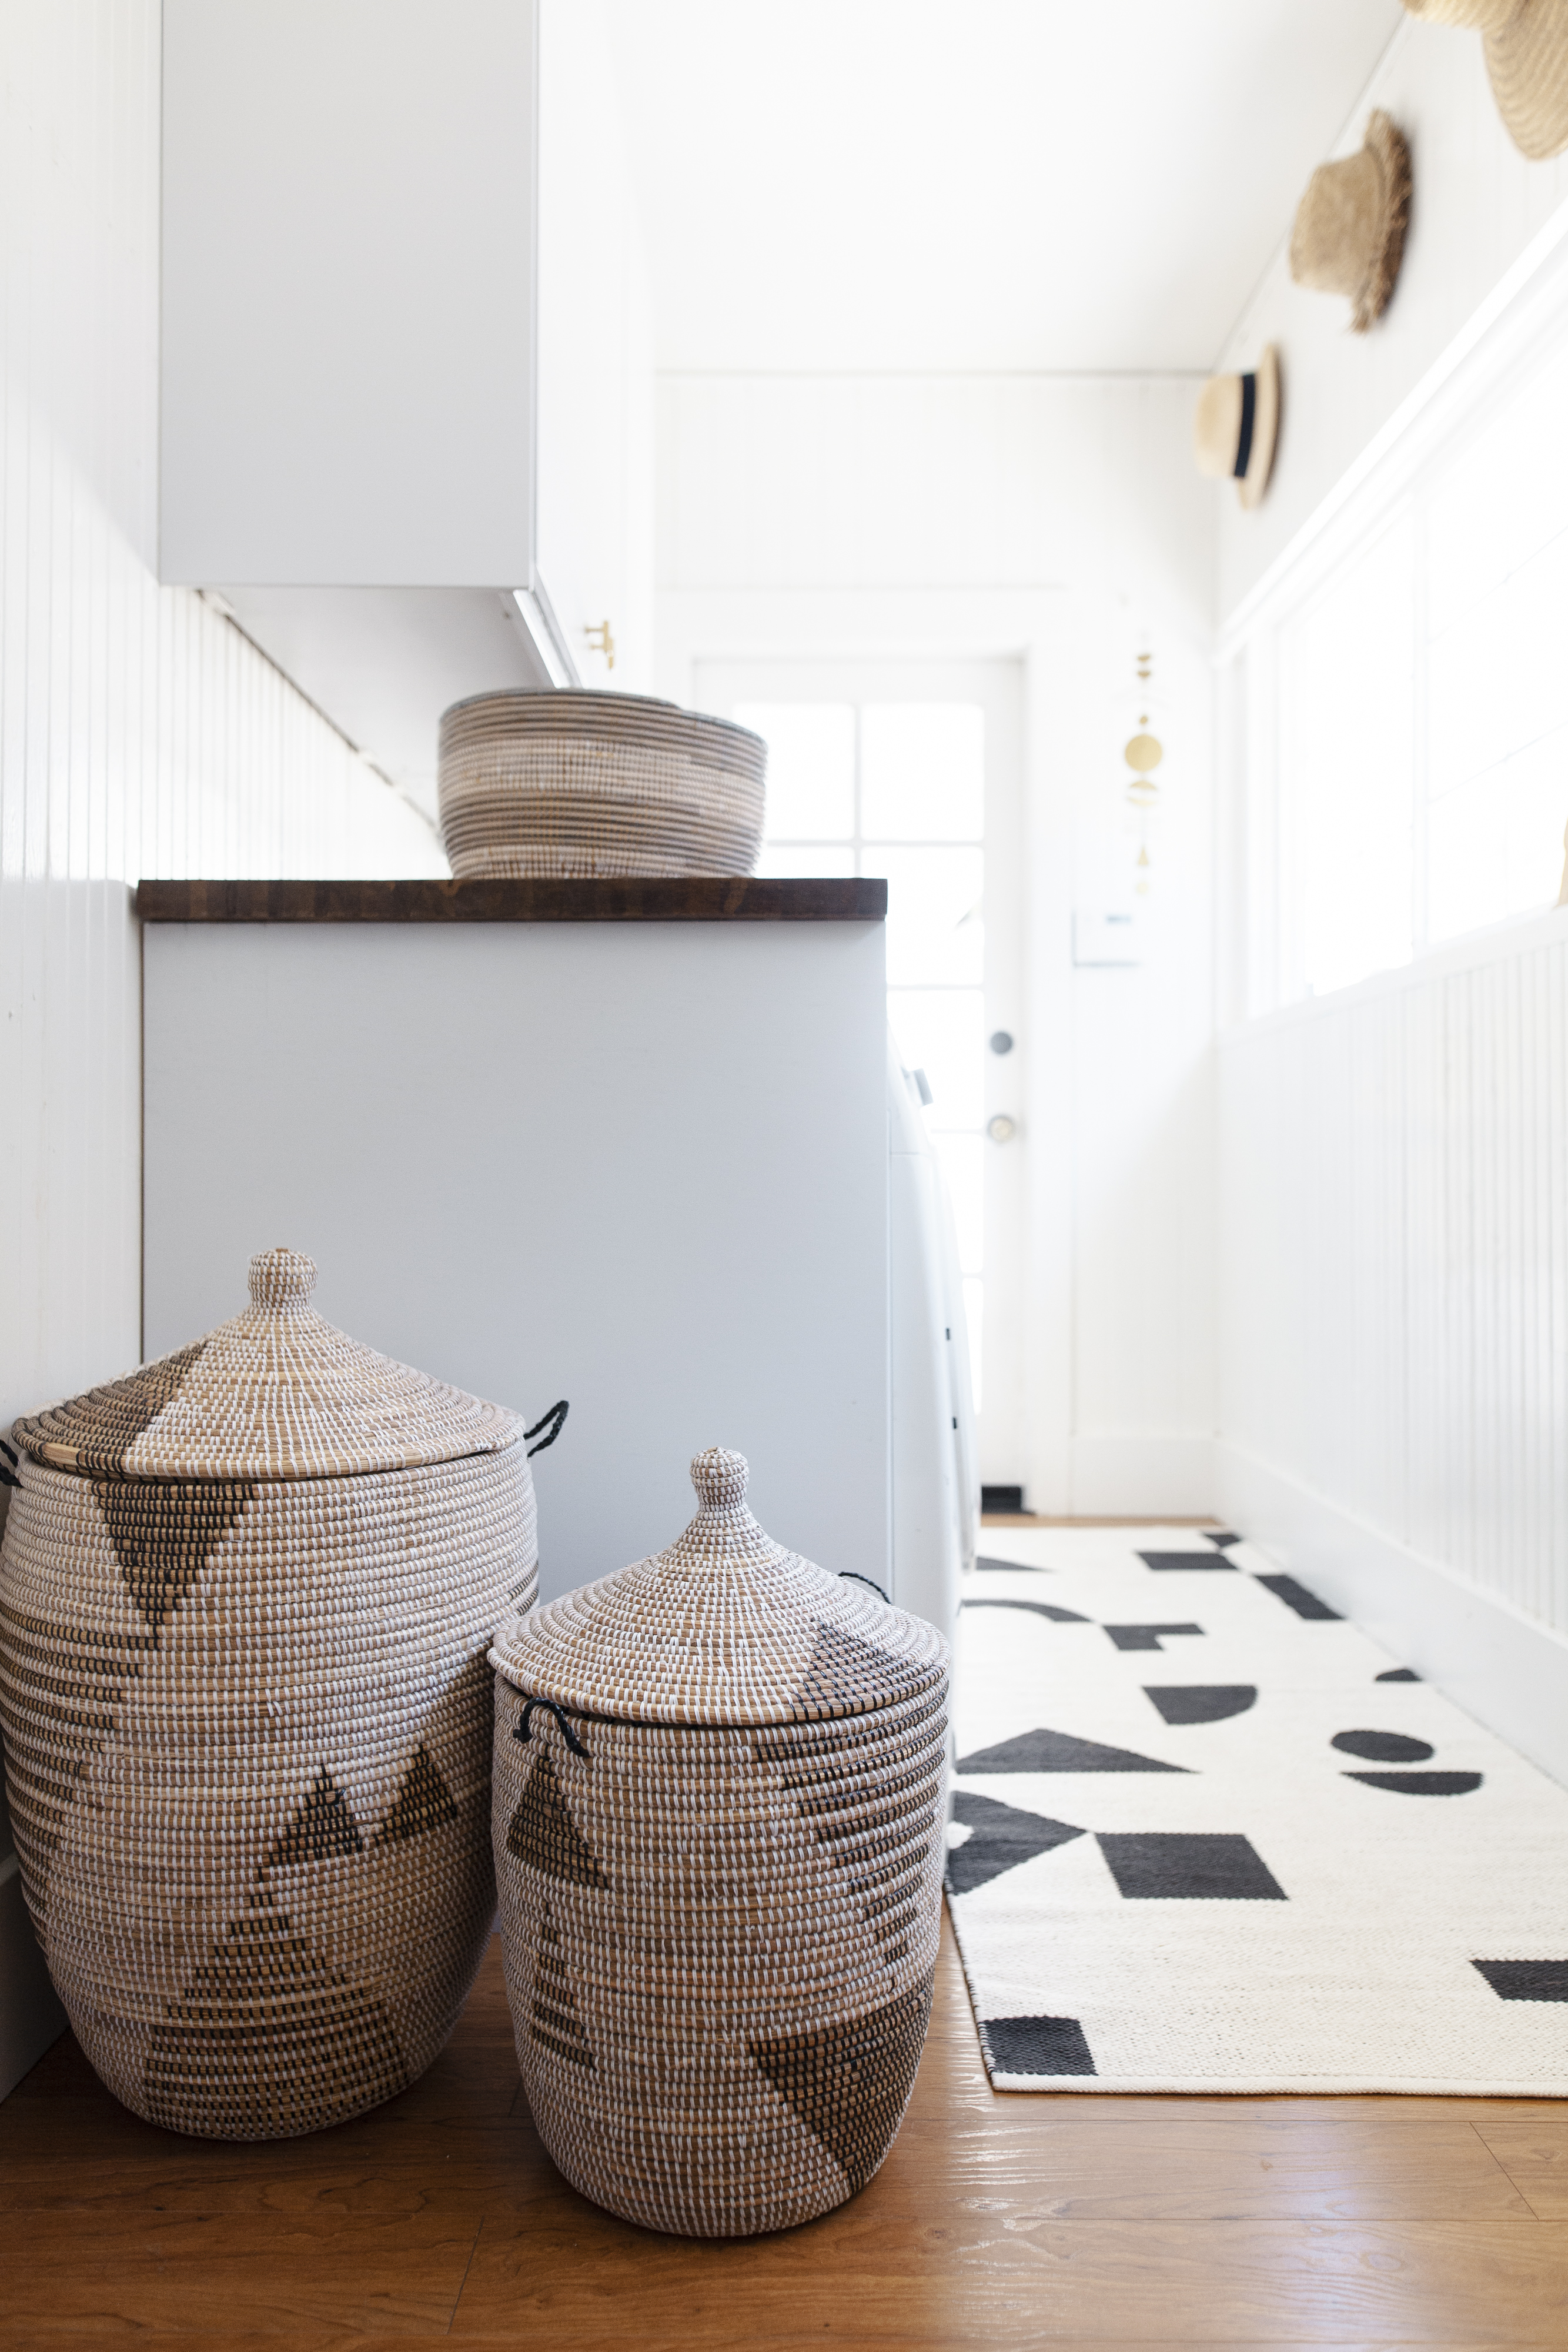 Aren't You so Excited to See These Laundry Room Storage Ideas?